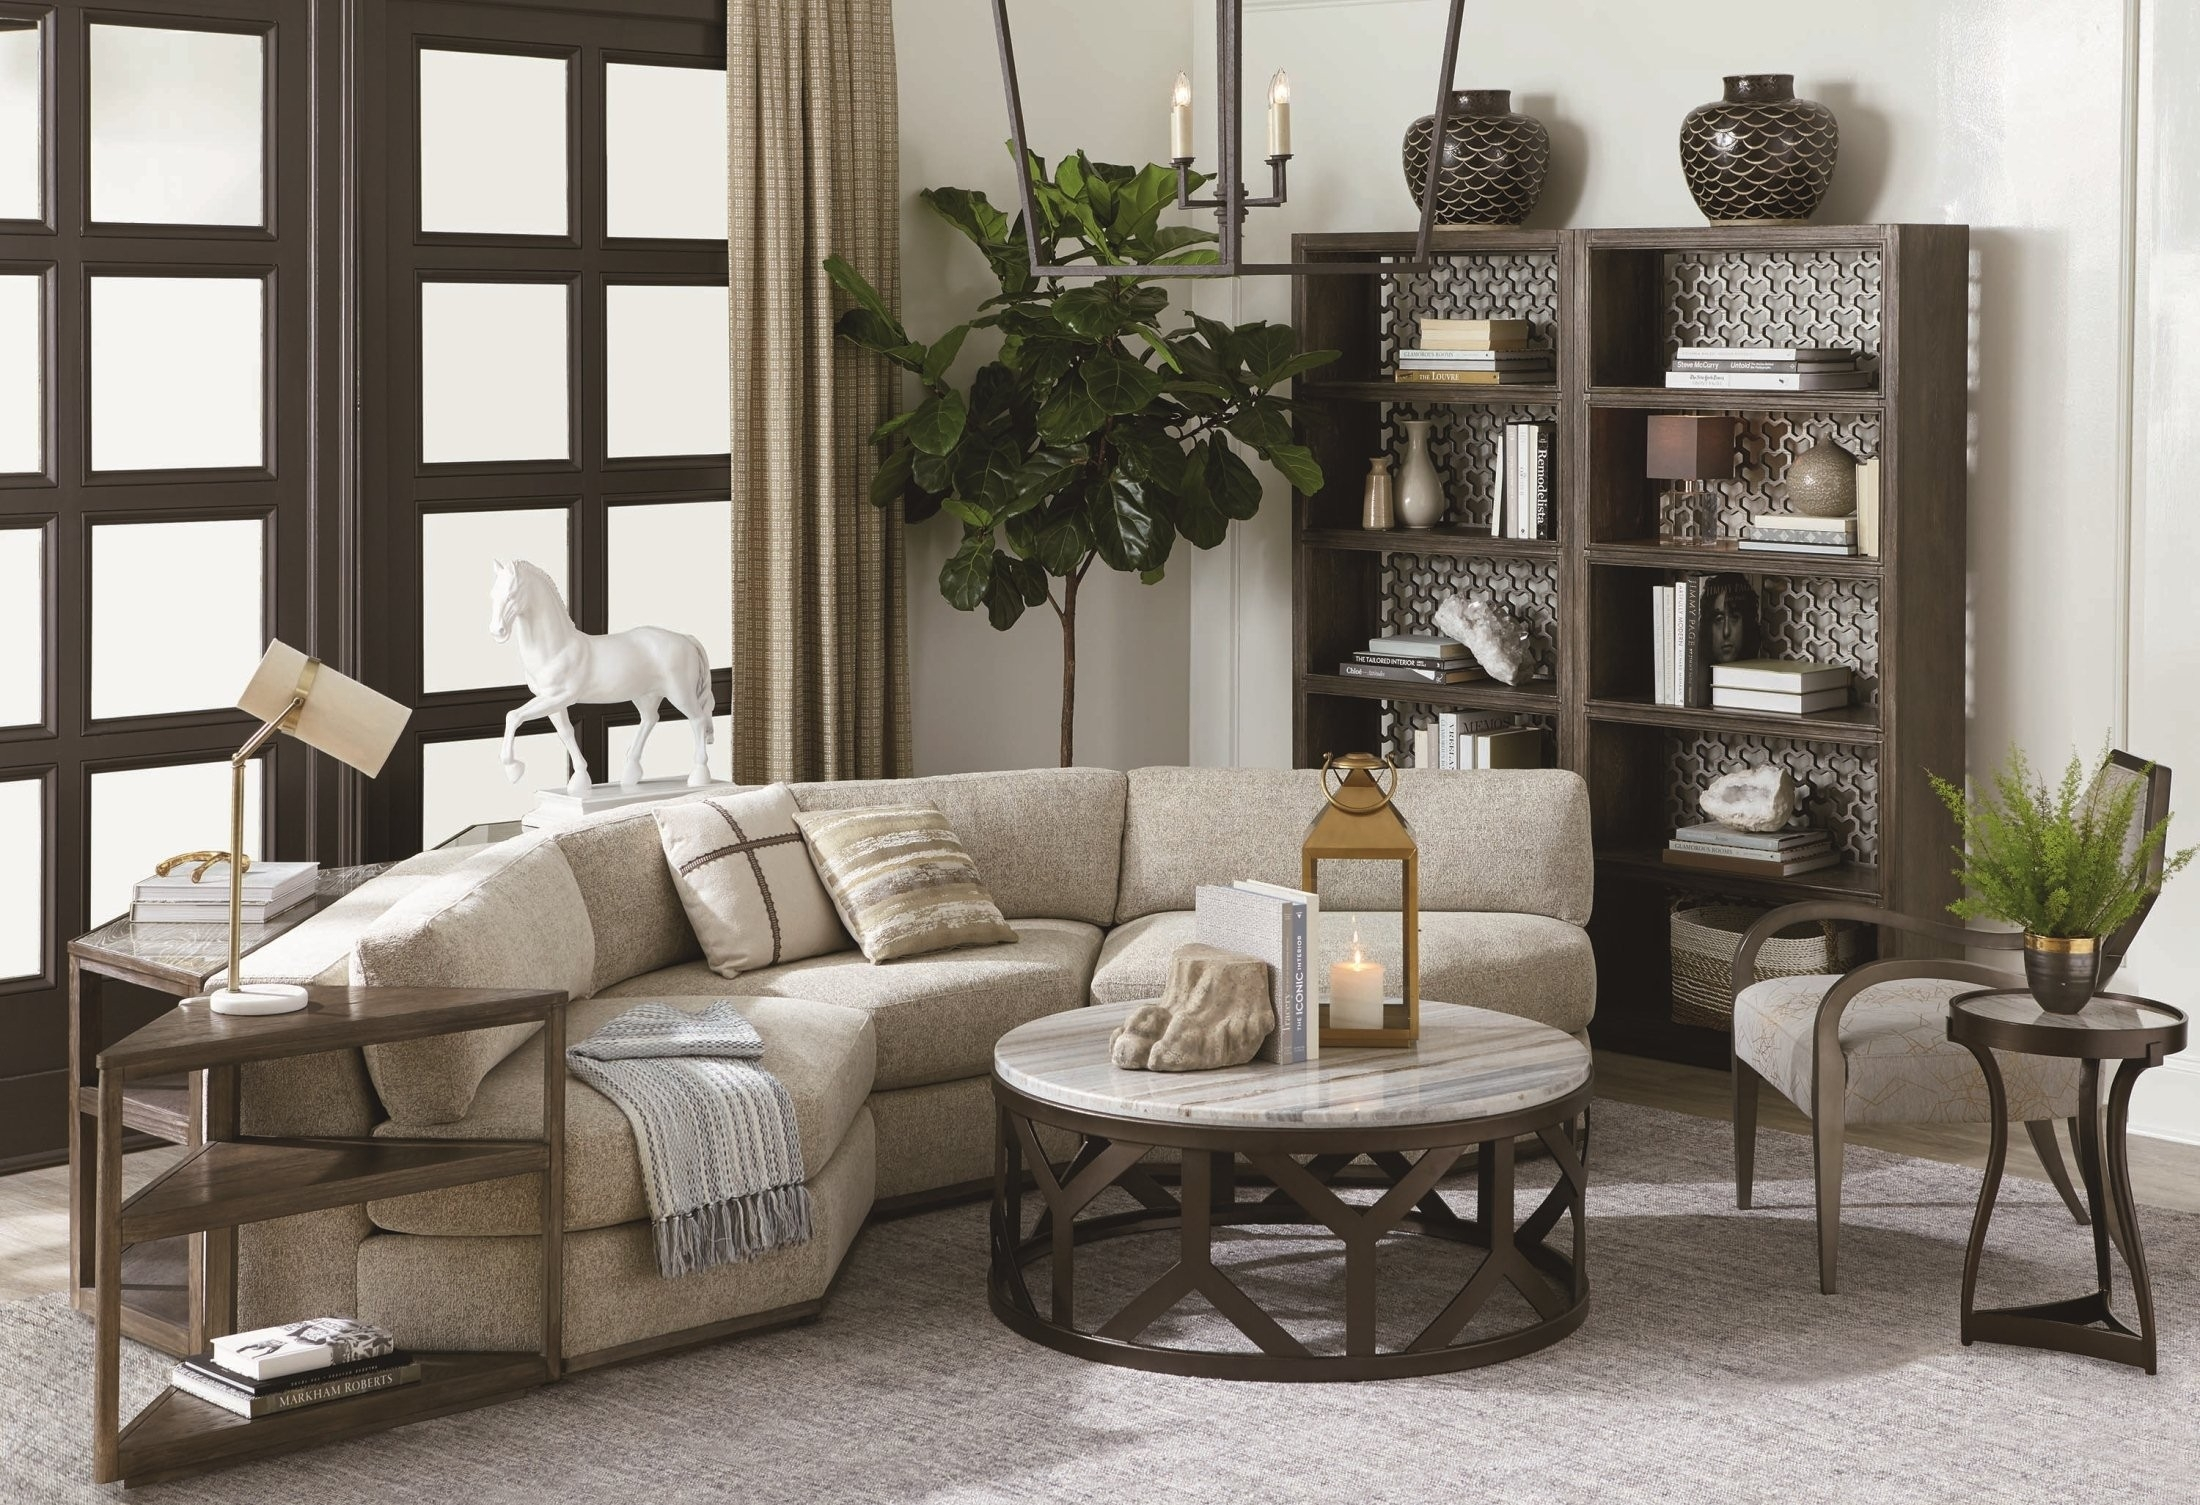 Geode Medium Oak Diamond 3 Piece Sectional From Art | Coleman Furniture Intended For Harper Down 3 Piece Sectionals (Image 8 of 25)